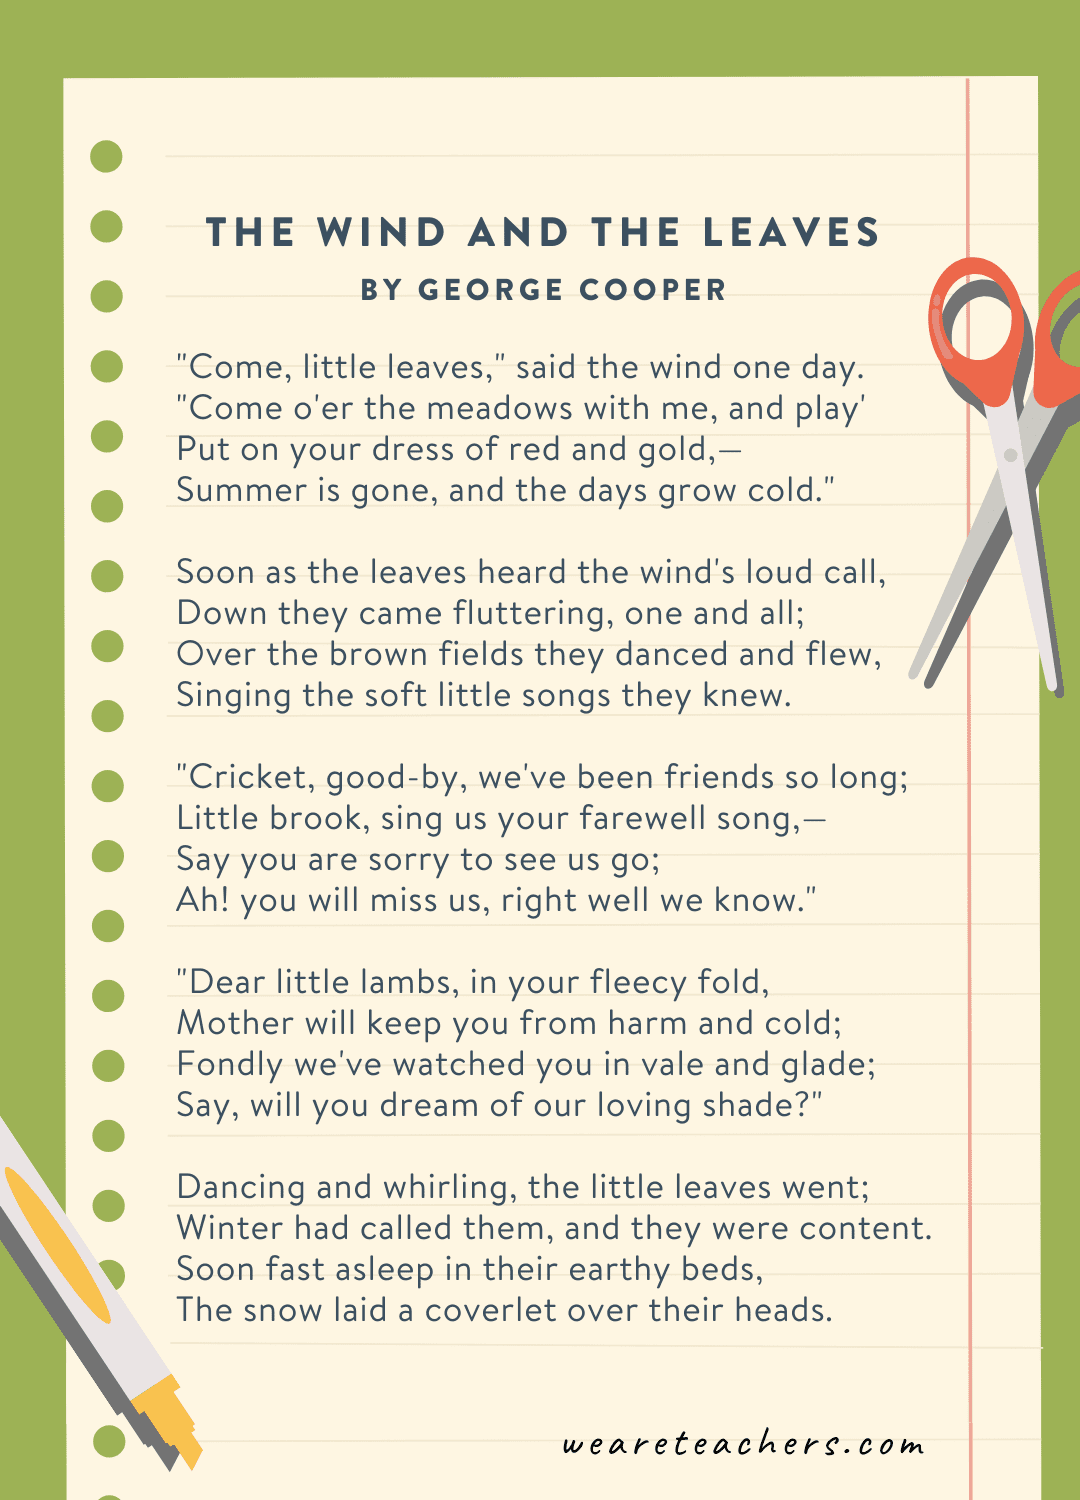 22. The Wind and the Leaves by George Cooper